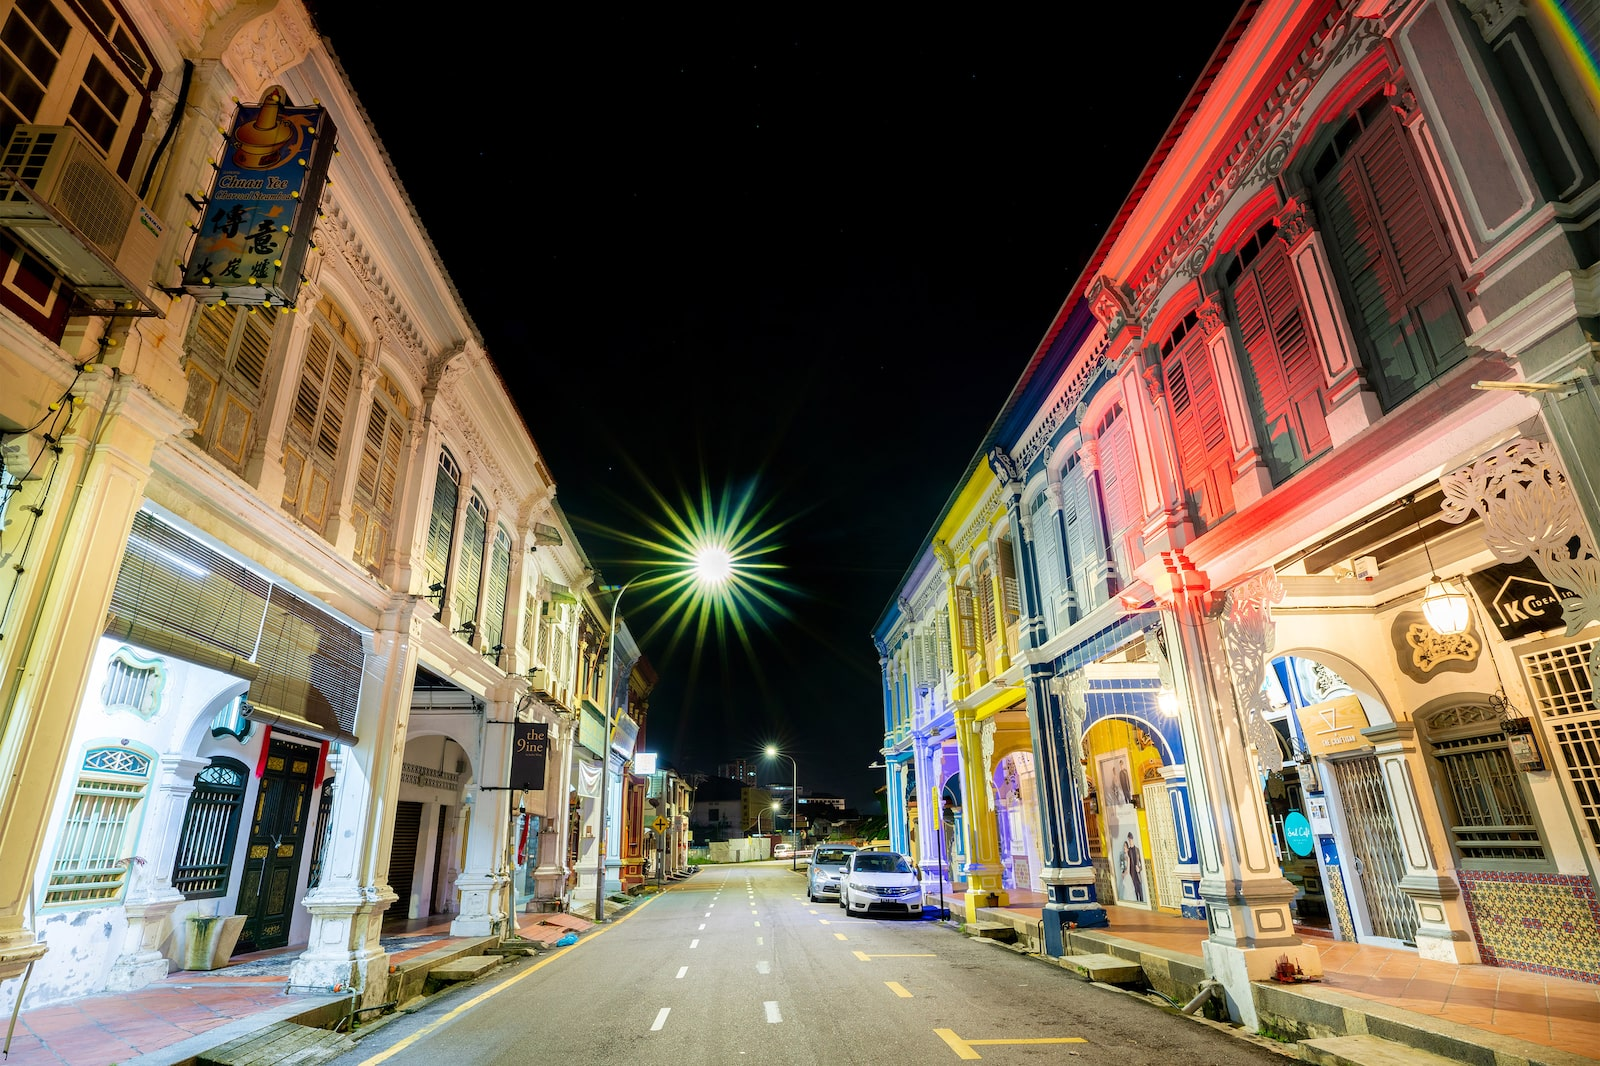 Street lined with colorful shophouses at dusk in George Town